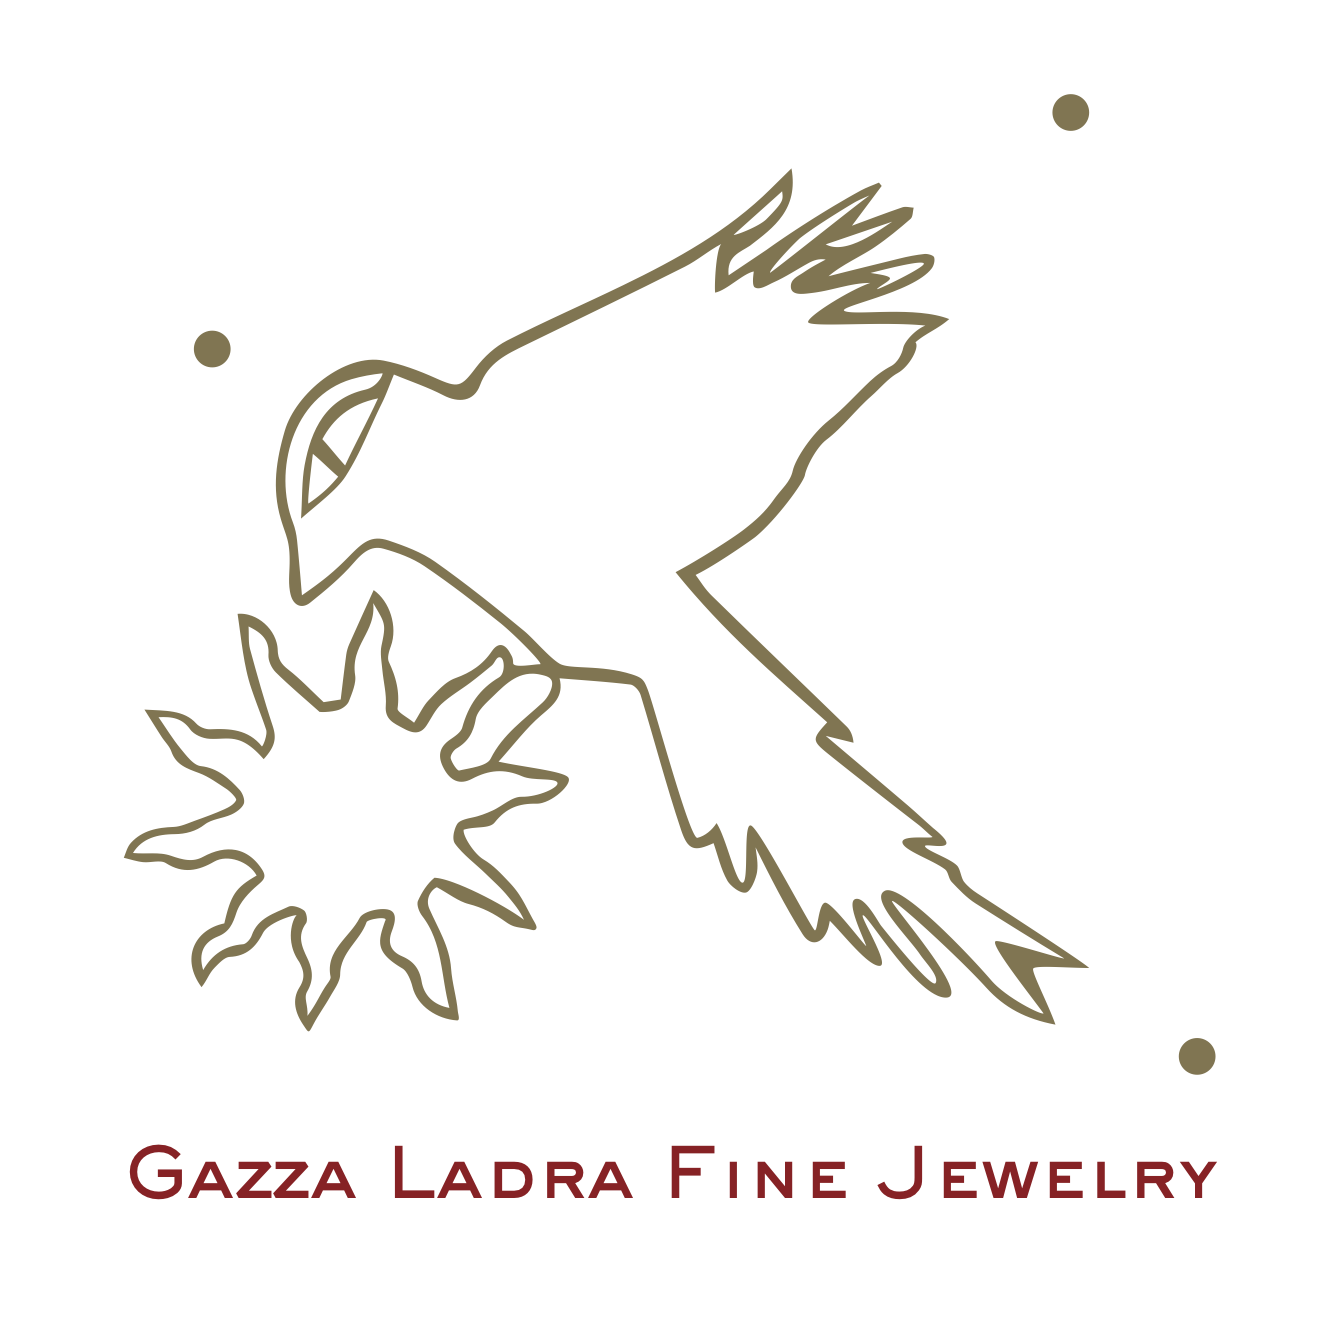 Gazza Ladra Fine Jewelry